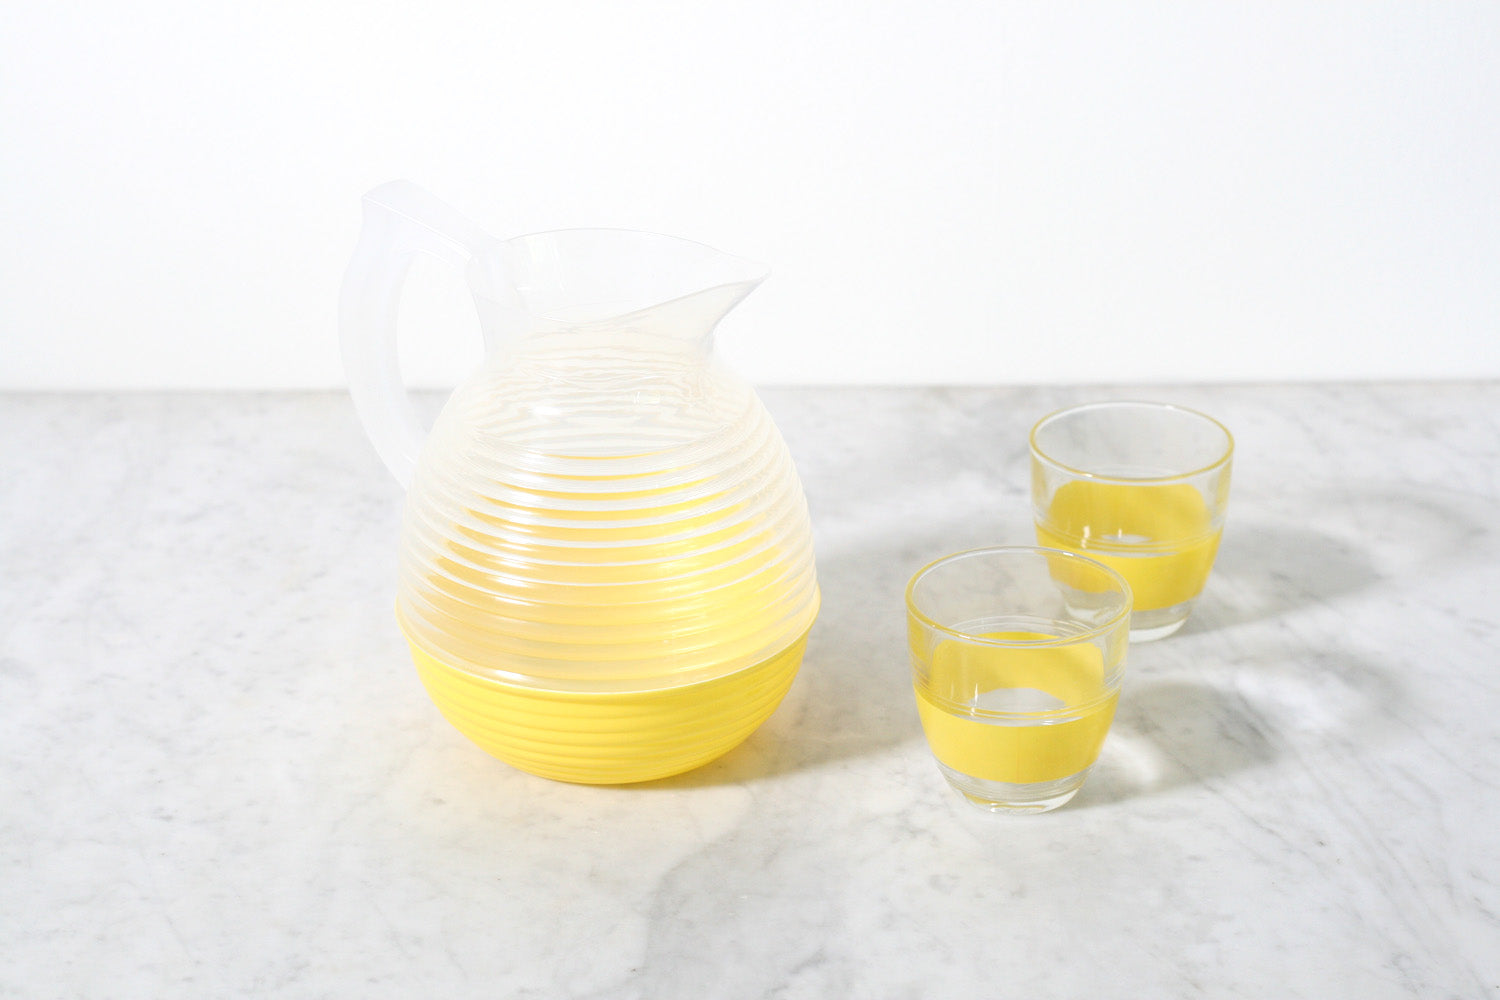 La Carafe Francaise and Duralex Set